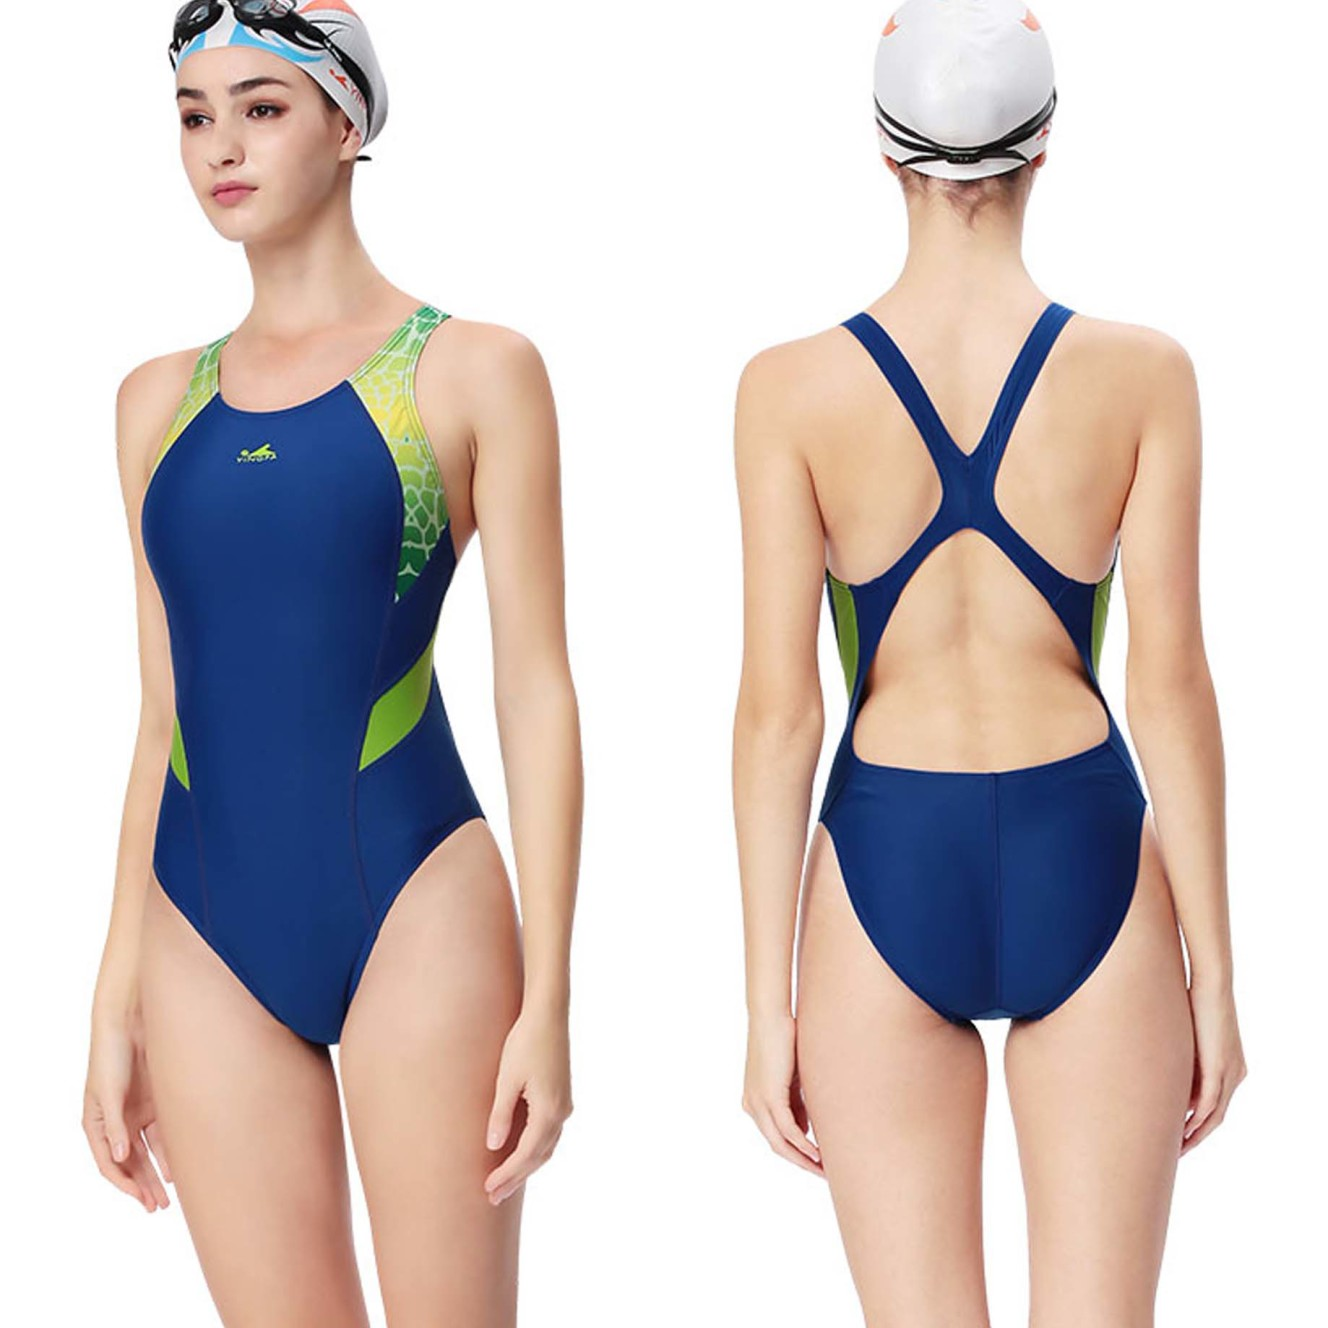 cb63a0af49 Yingfa 946-2 one piece swimsuit-racing & training swimsuit Blue swimsuit